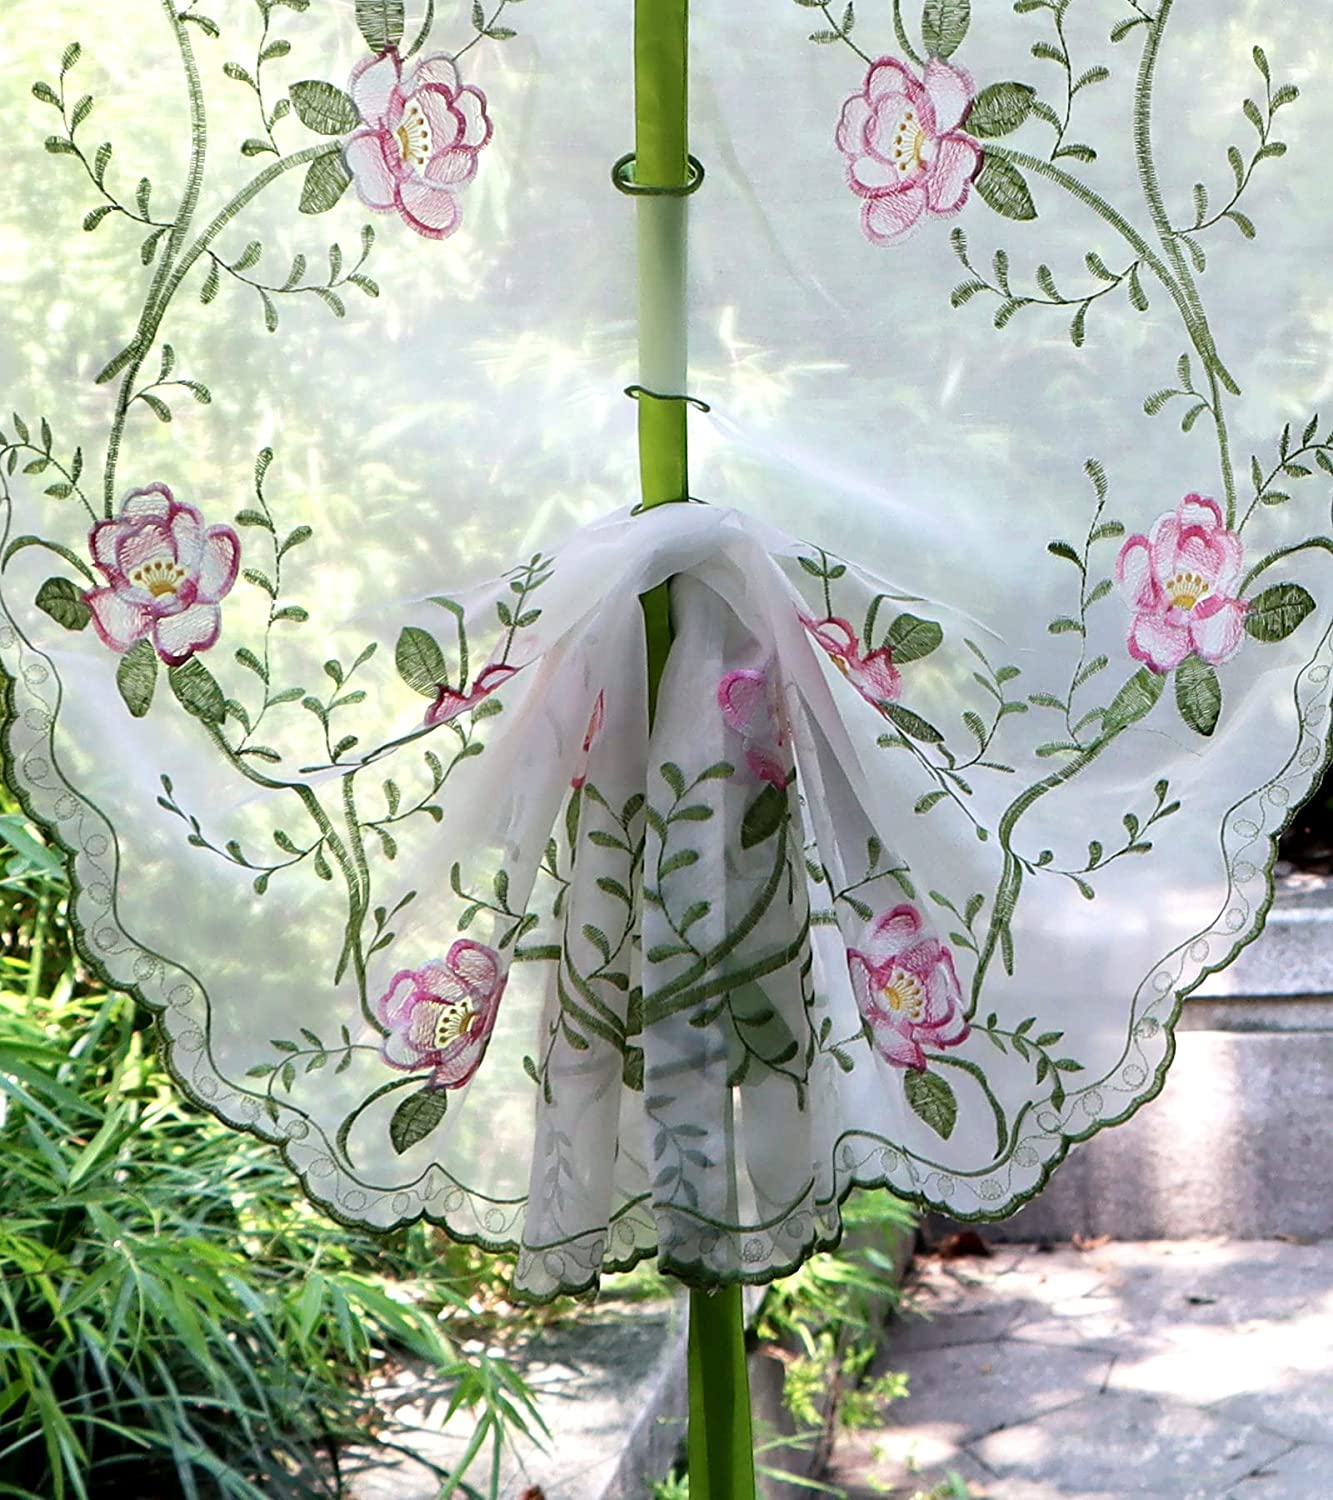 Lace Balloon Shade Valance Farmhouse Embroidered Floral lowest price Fees free Sheer Ti